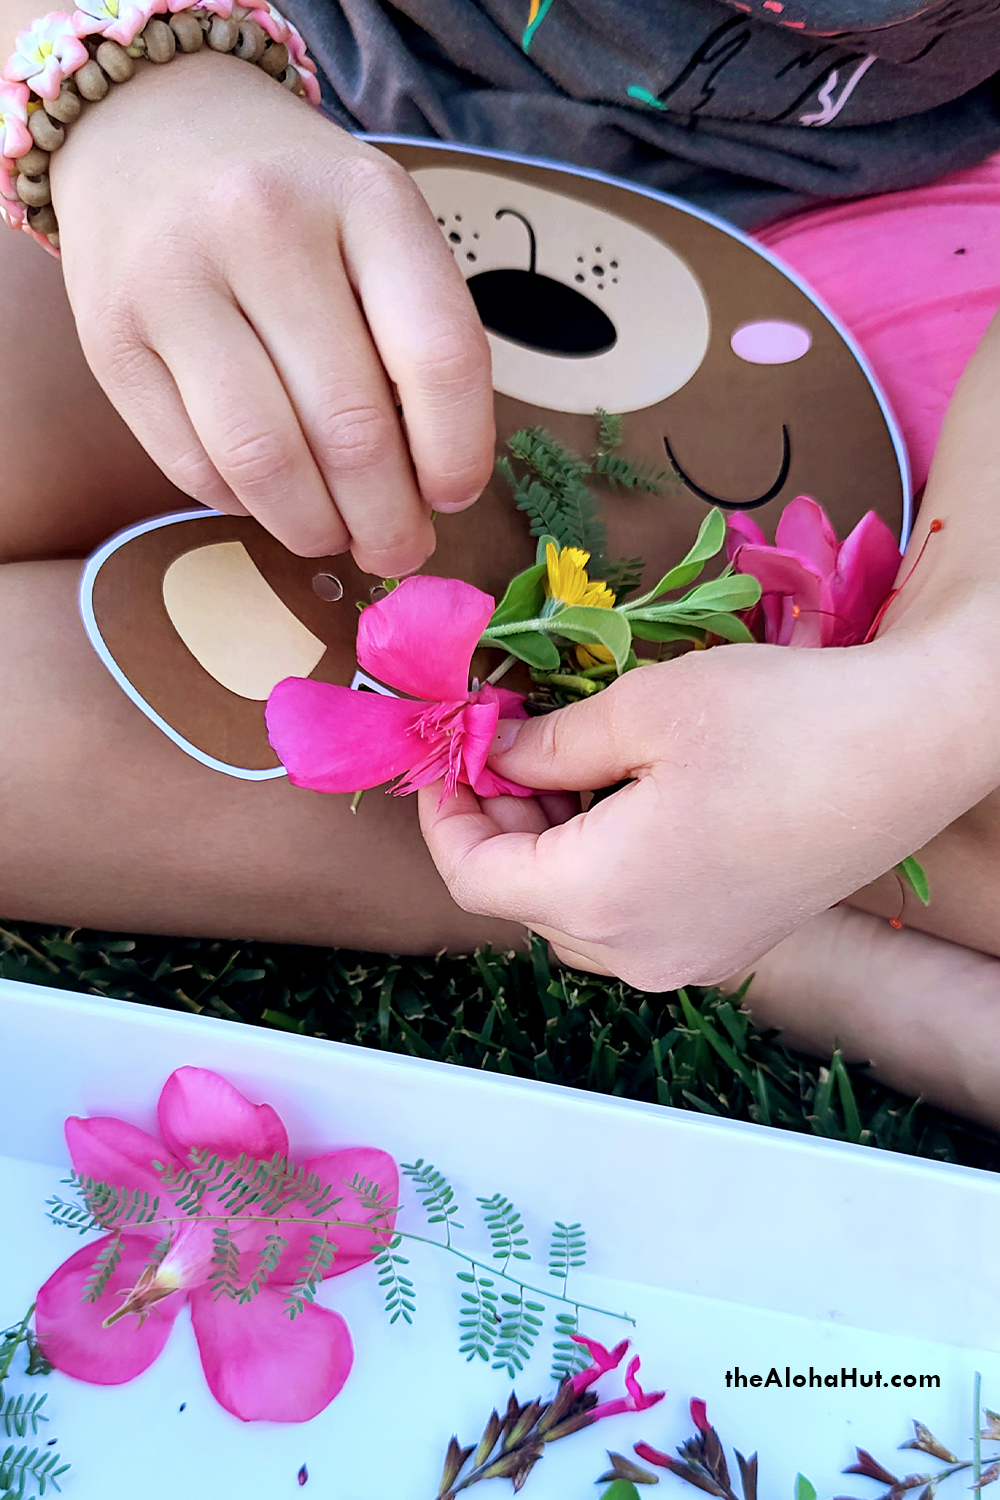 flower crown threading activity by the Aloha Hut